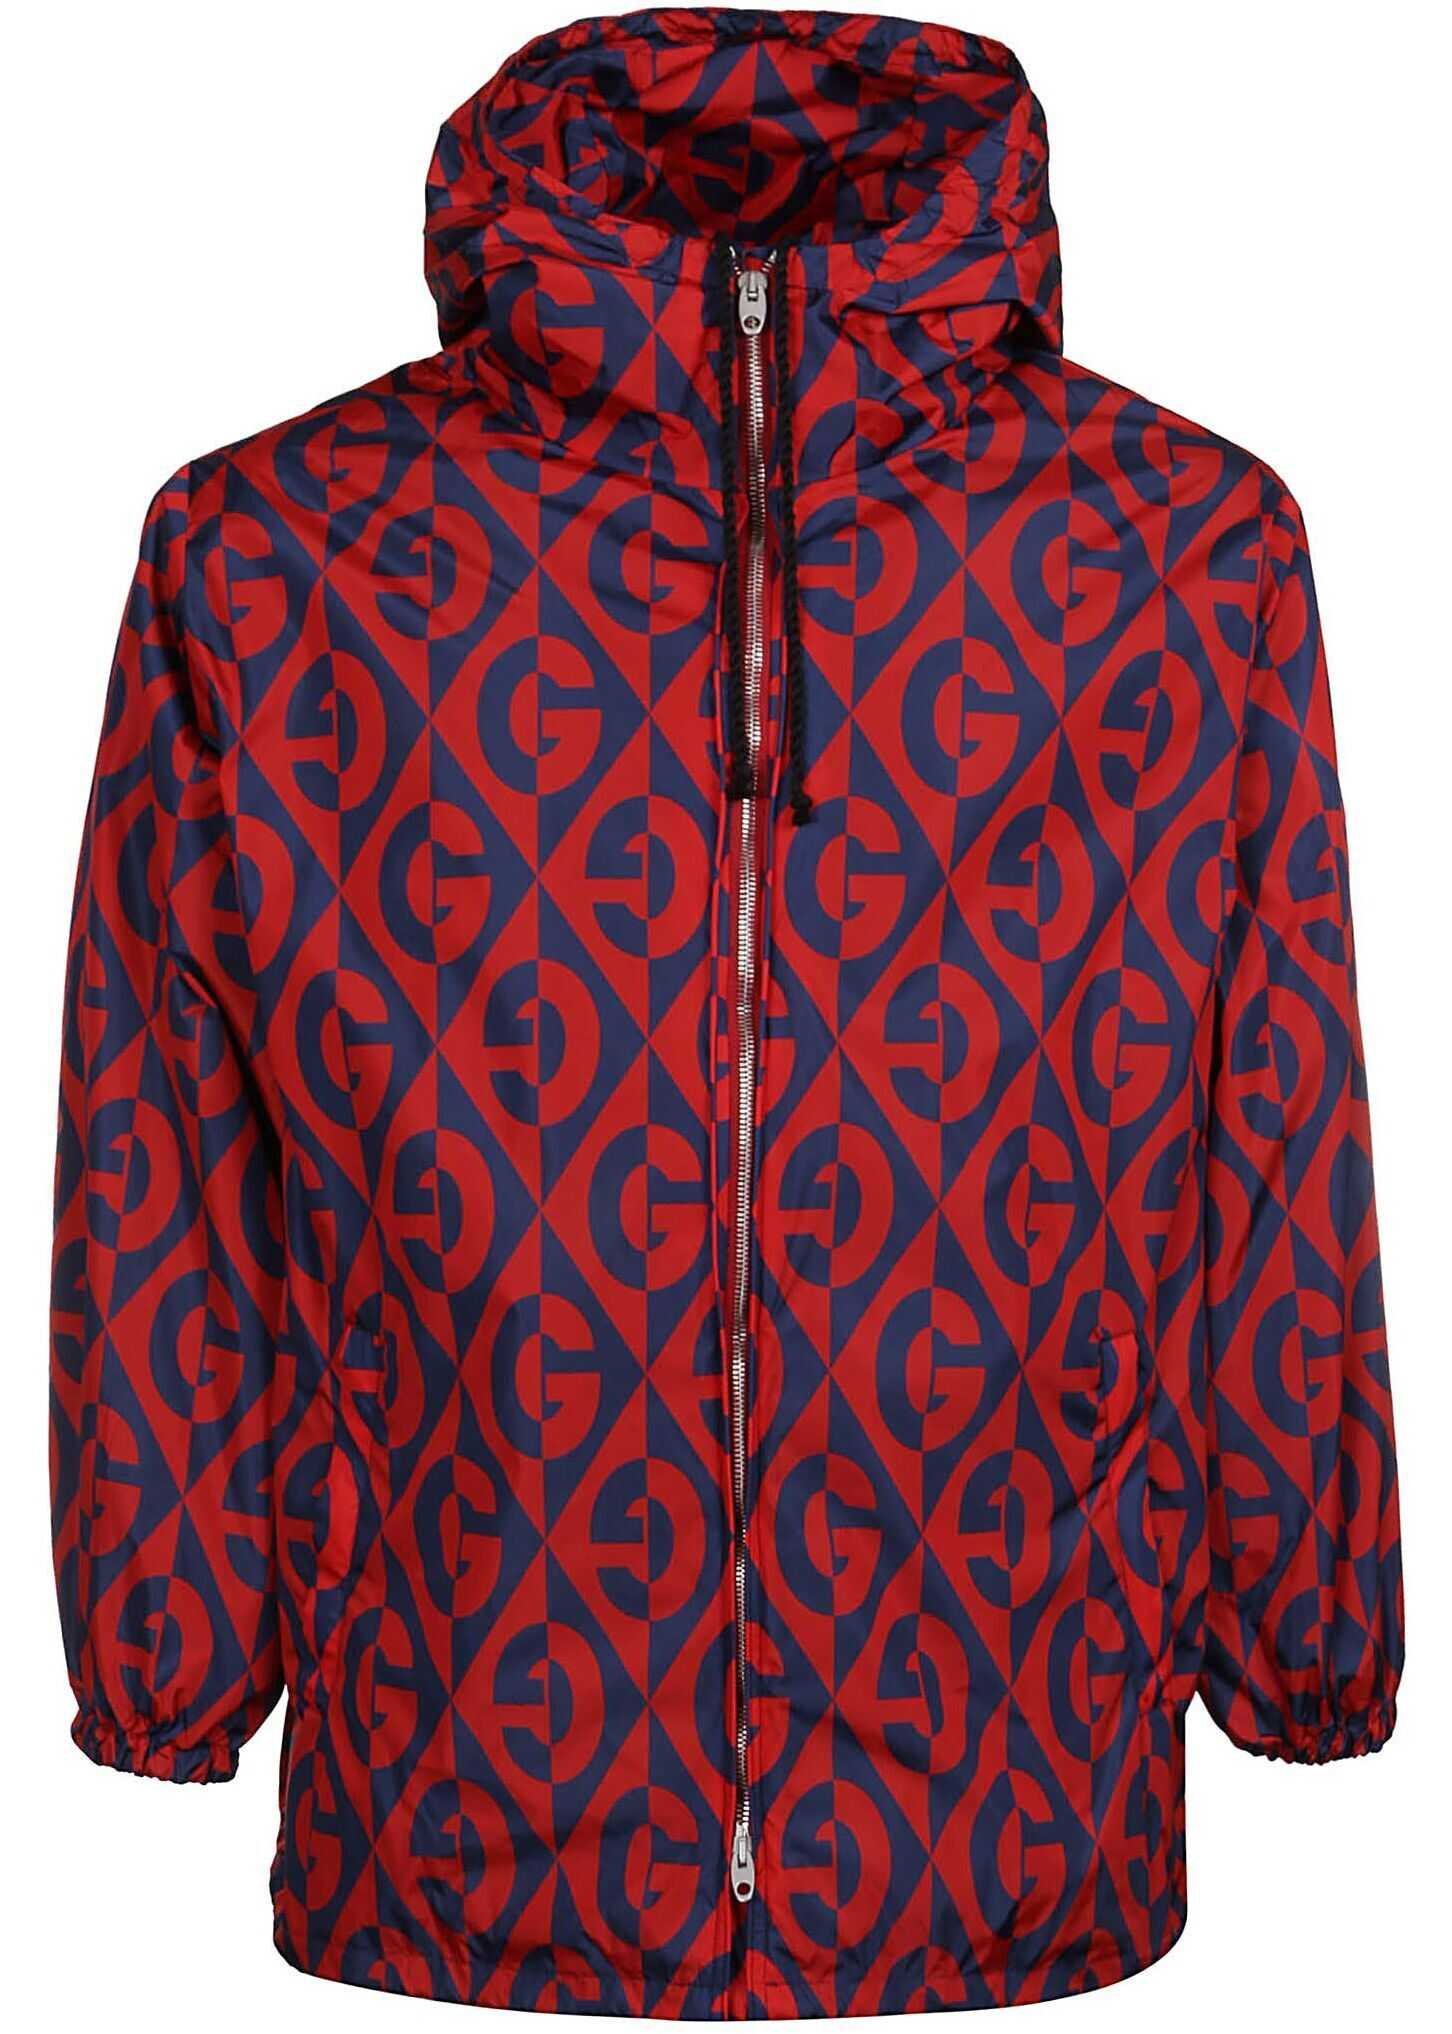 Gucci Polyamide Outerwear Jacket RED